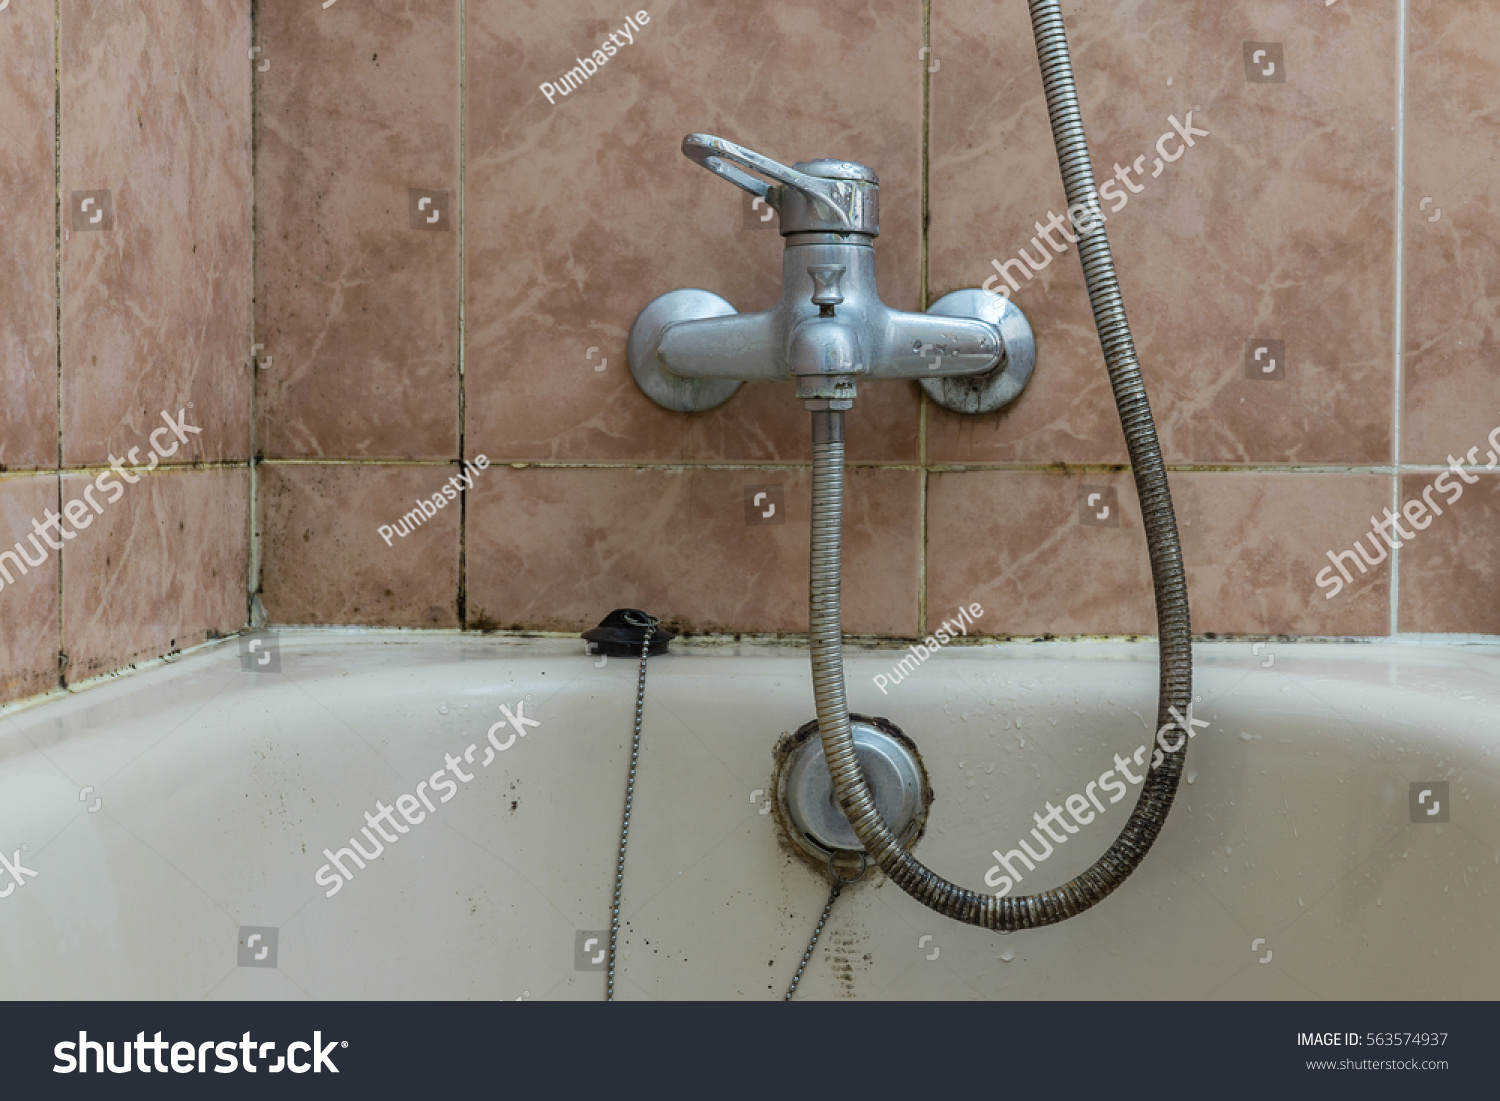 Faucet Lime Deposit Calcified Water Tiles Stock Photo 563574937 ...